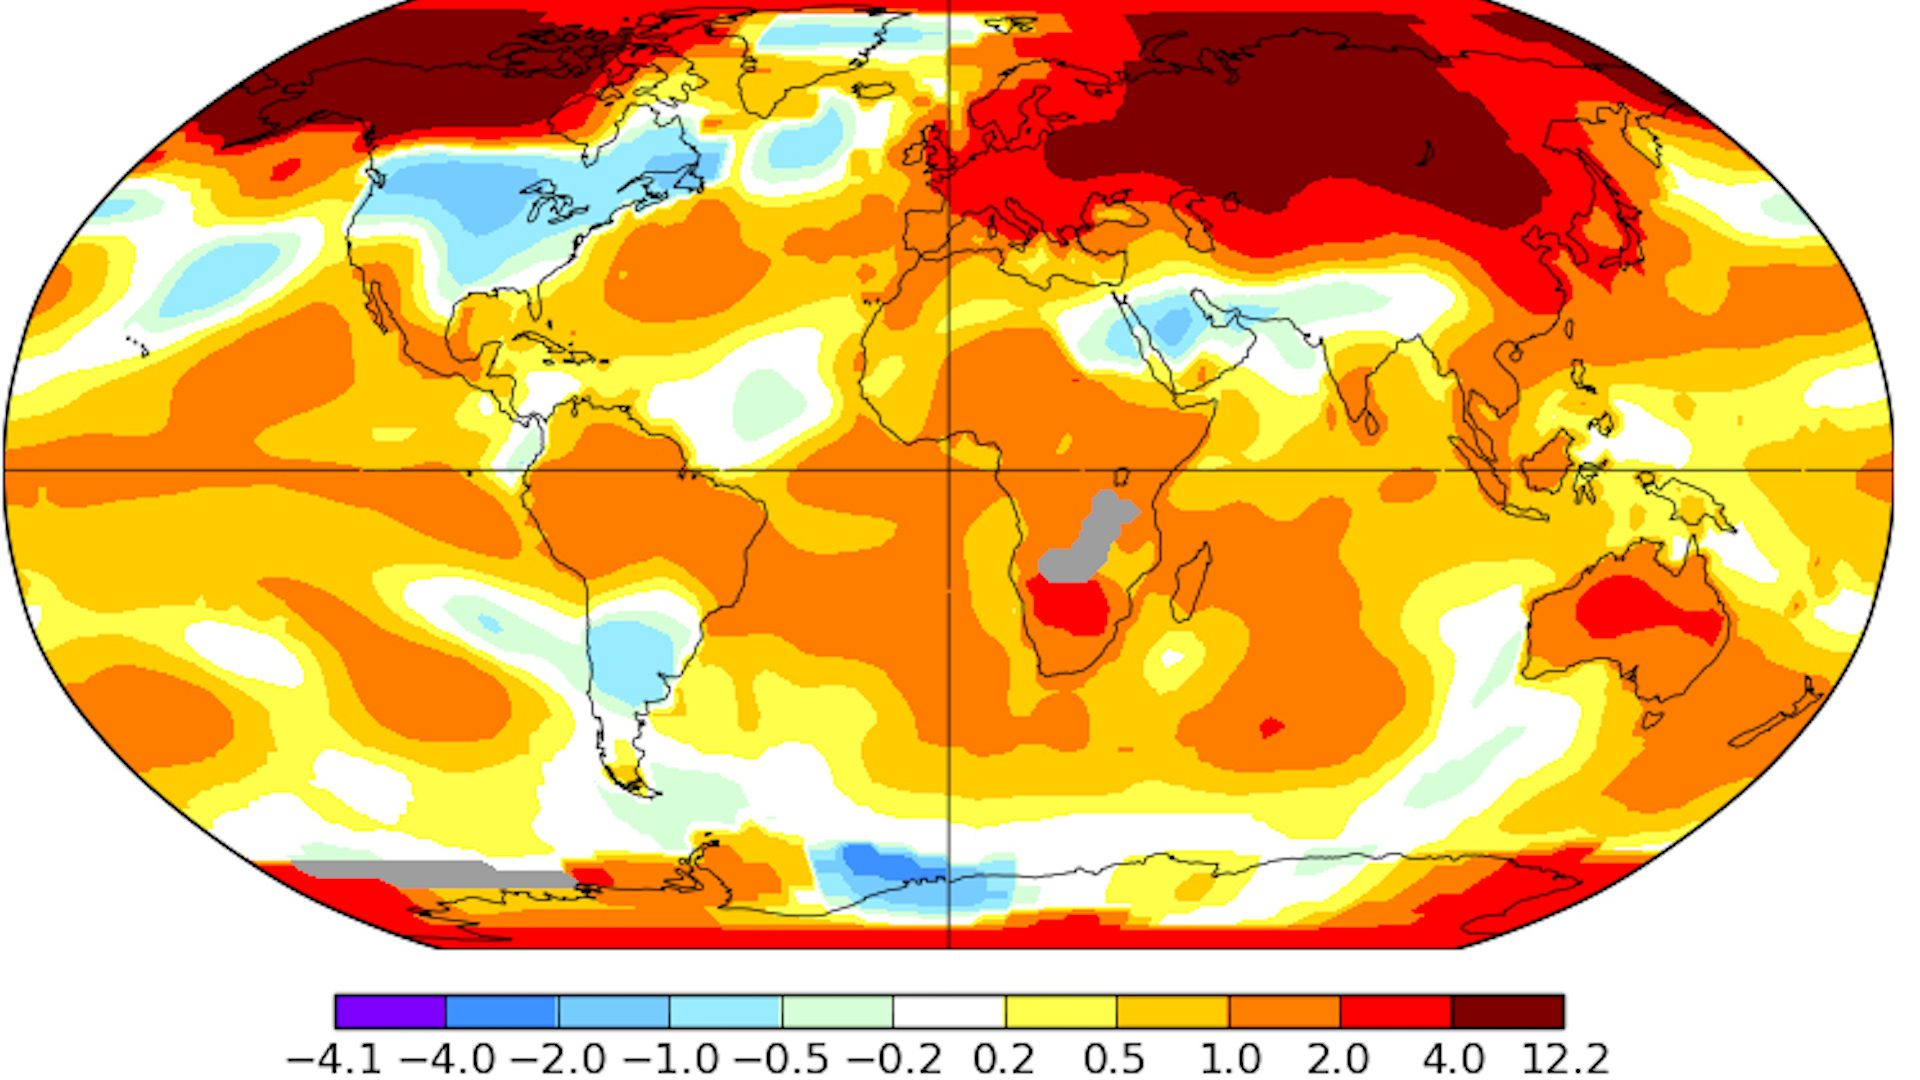 Global average temperature anomalies for March 2019 compared to the 1951-1980 average.